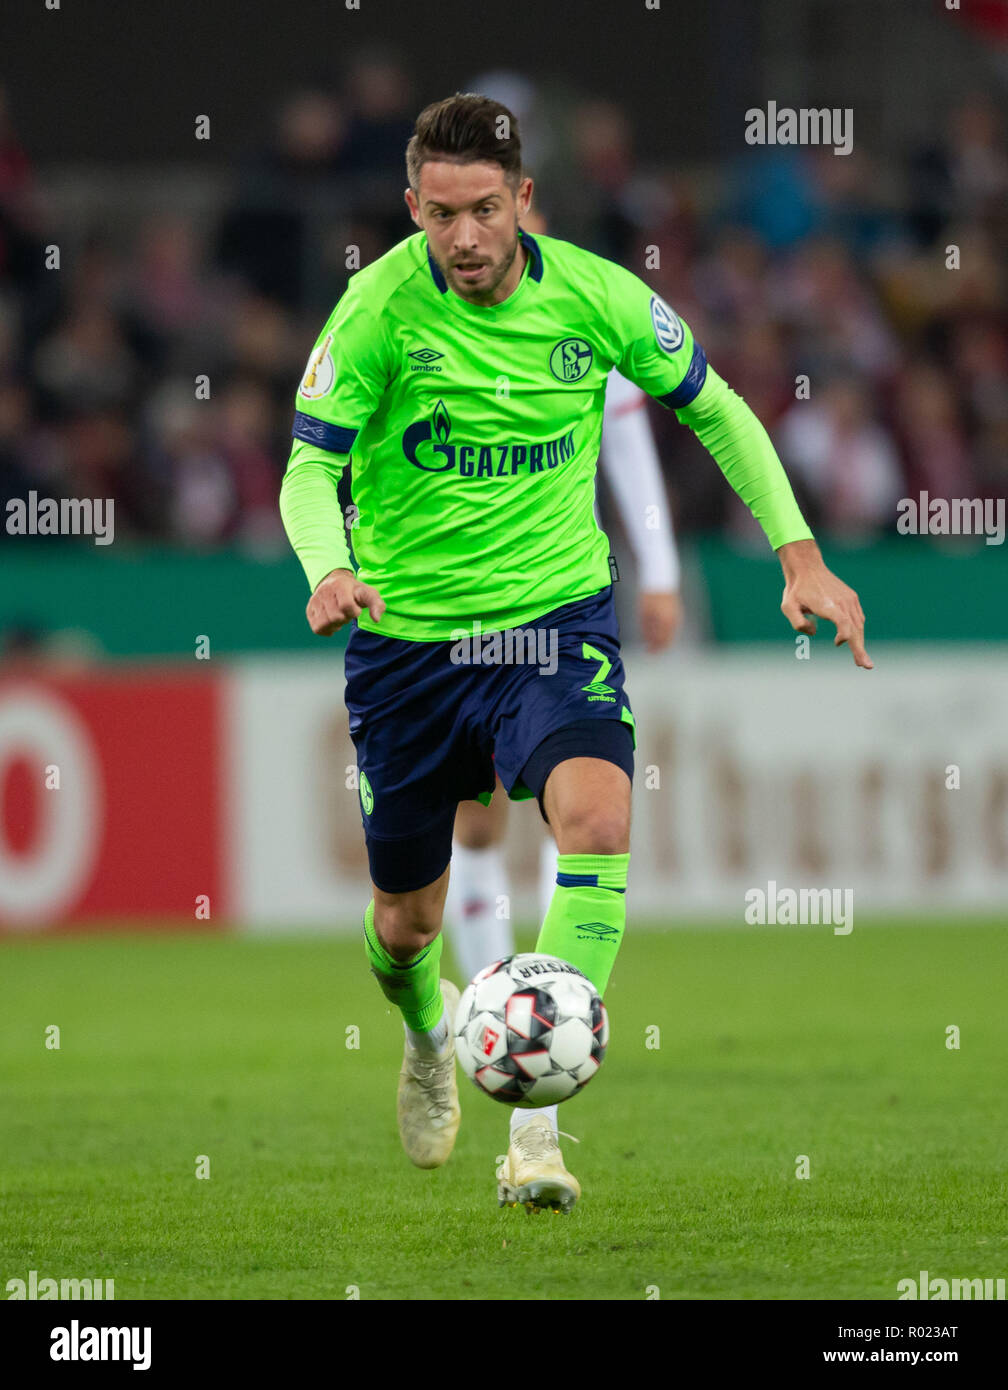 Cologne, Germany October 31 2018, DFB Pokal, FC Koeln - FC Schalke 04: Mark Uth (S04) in action.                  Credit: Juergen Schwarz/Alamy Live News    DFB REGULATIONS PROHIBIT ANY USE OF PHOTOGRAPHS AS IMAGE SEQUENCES AND/OR QUASI-VIDEO Credit: Juergen Schwarz/Alamy Live News - Stock Image